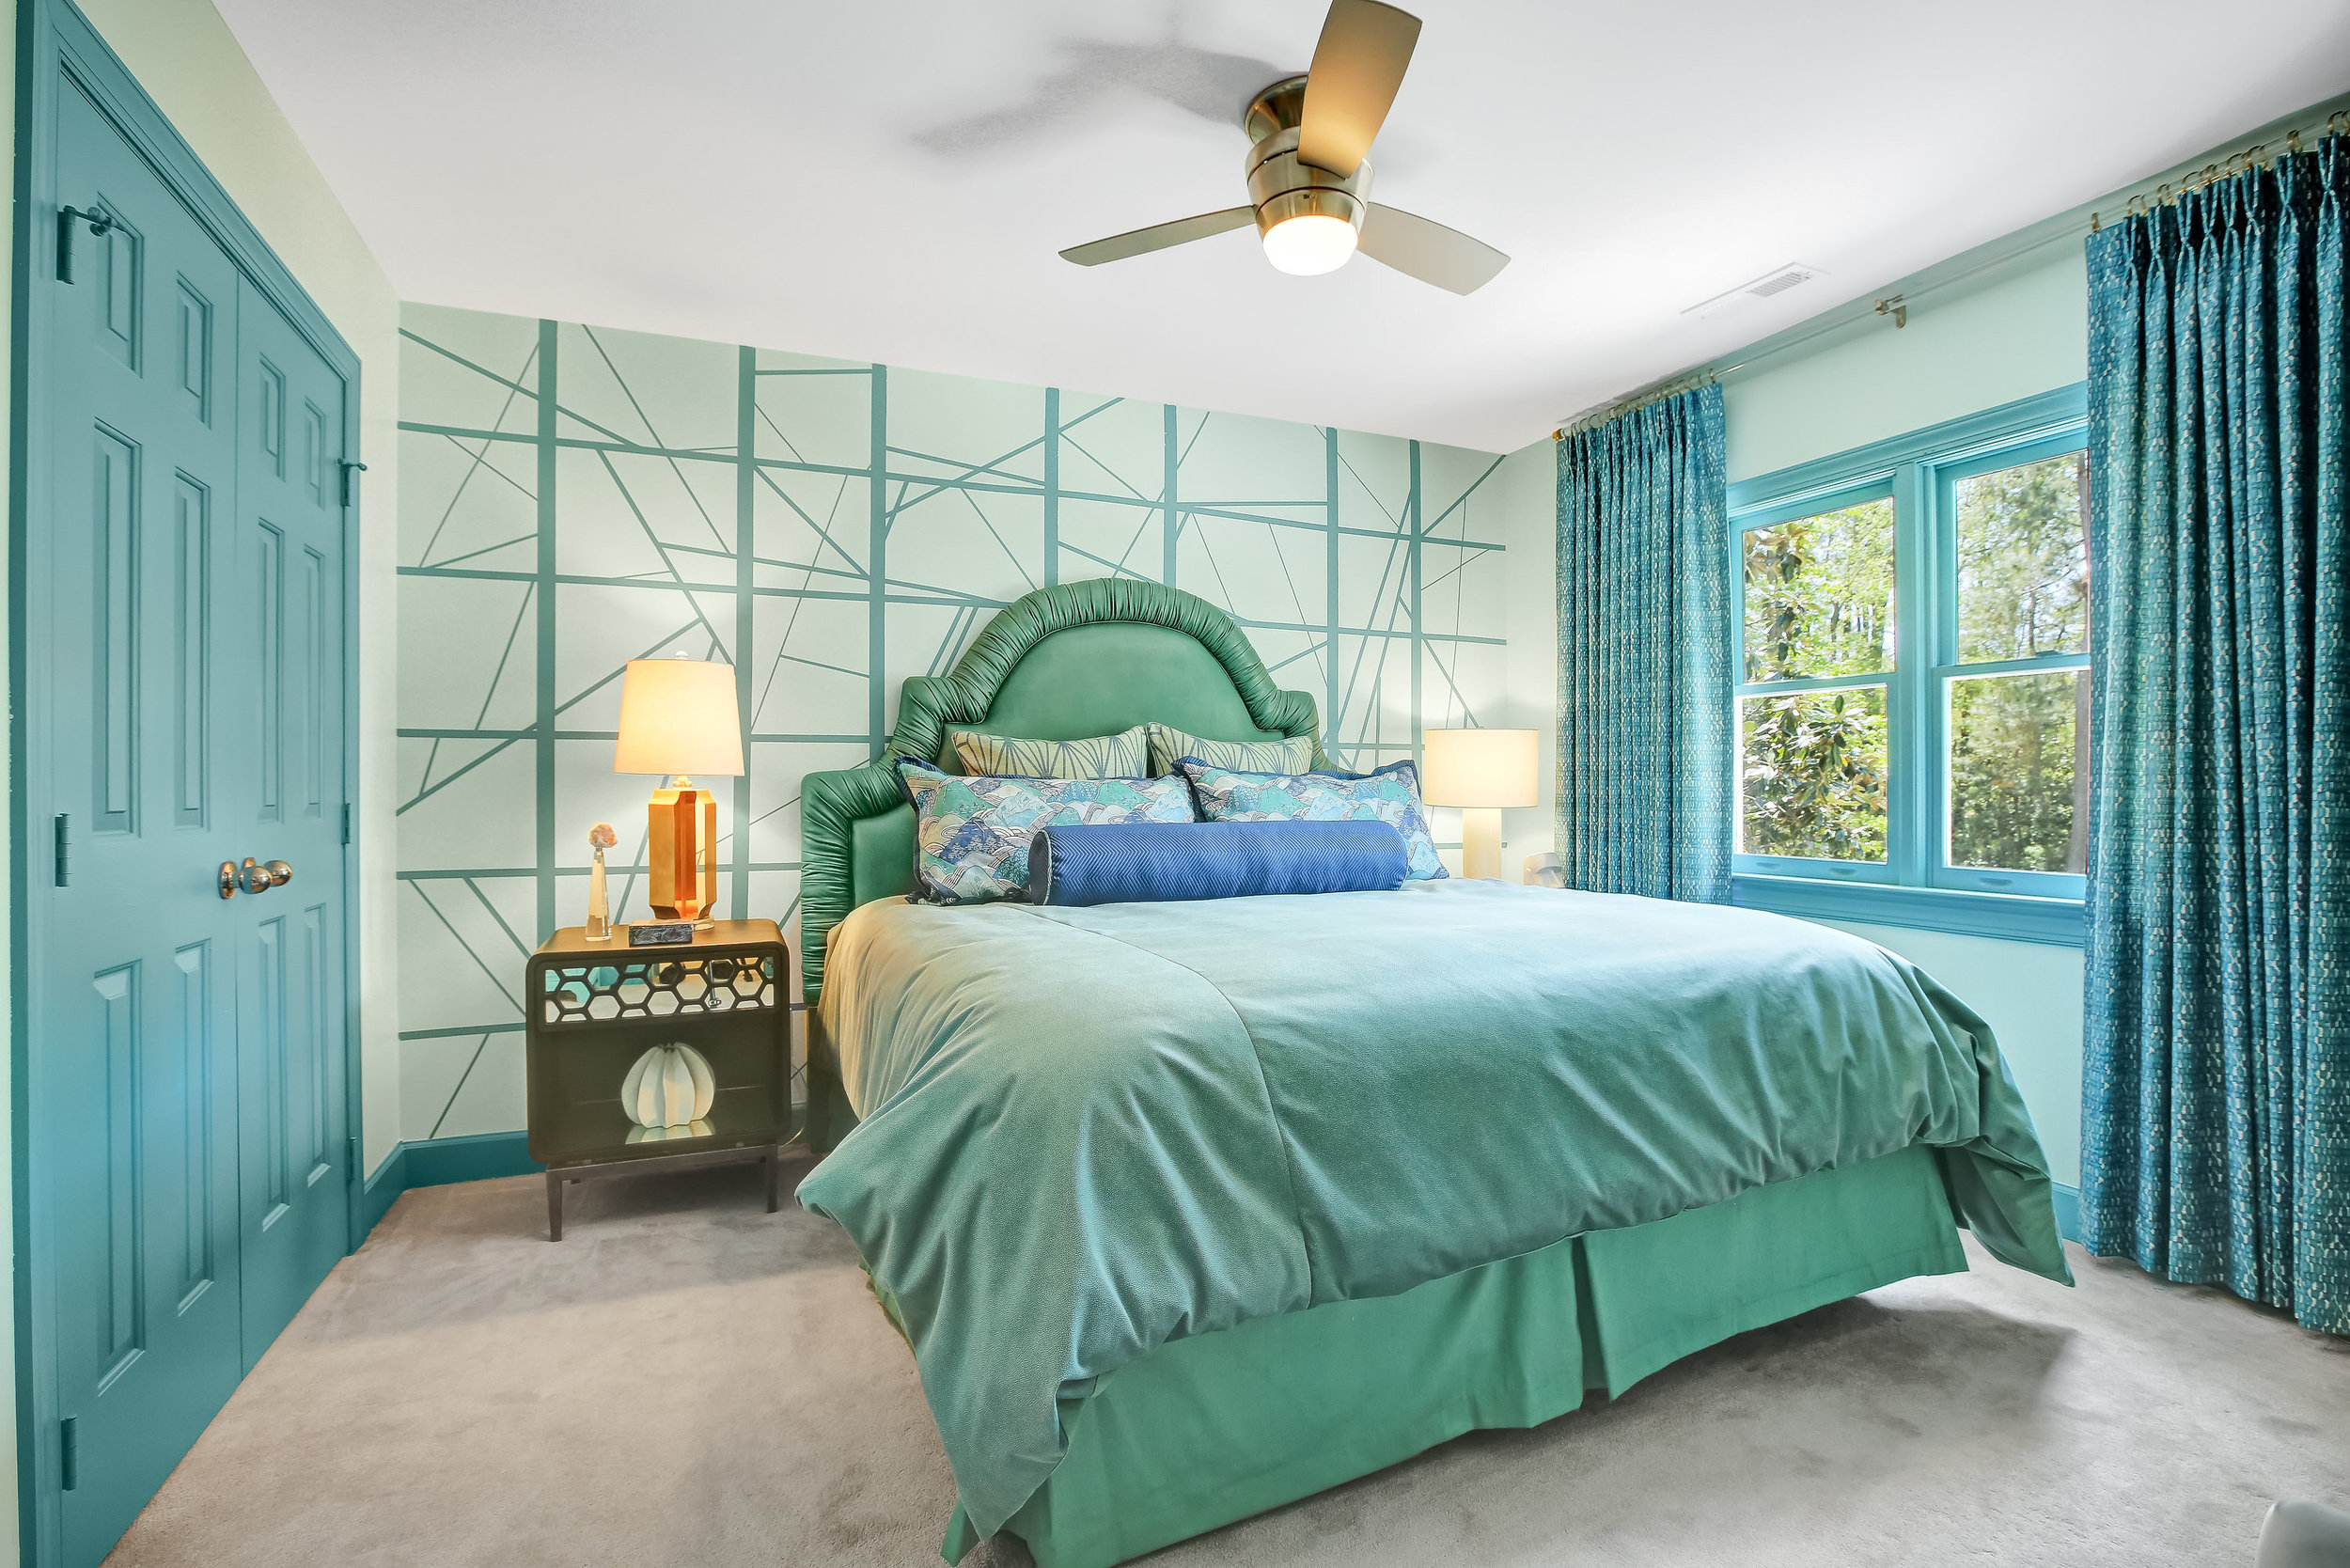 Turquoise colored bedroom with geometric designed wallpaper